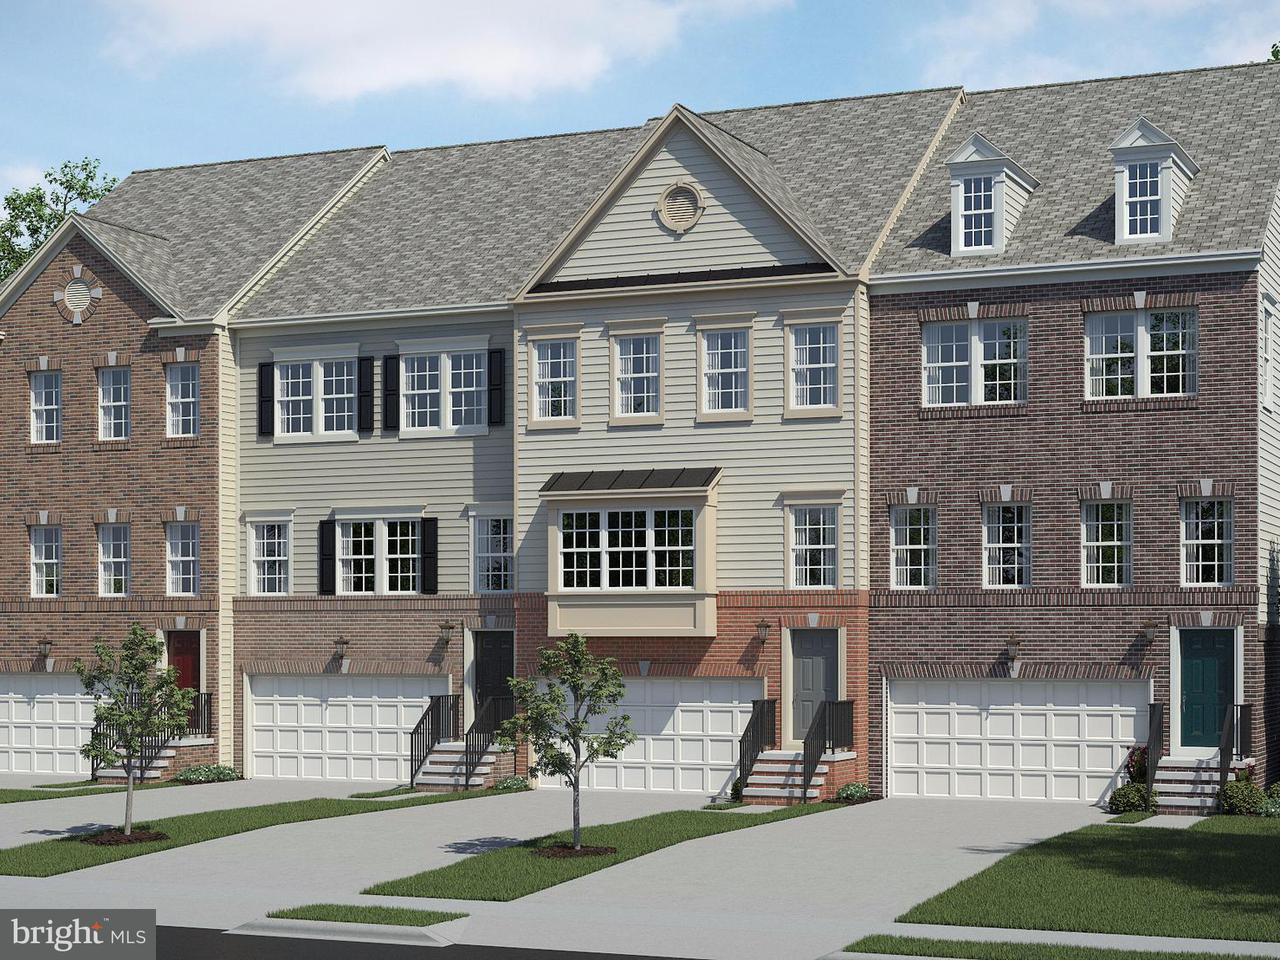 Townhouse for Sale at RED CLOVER Road RED CLOVER Road Gambrills, Maryland 21054 United States